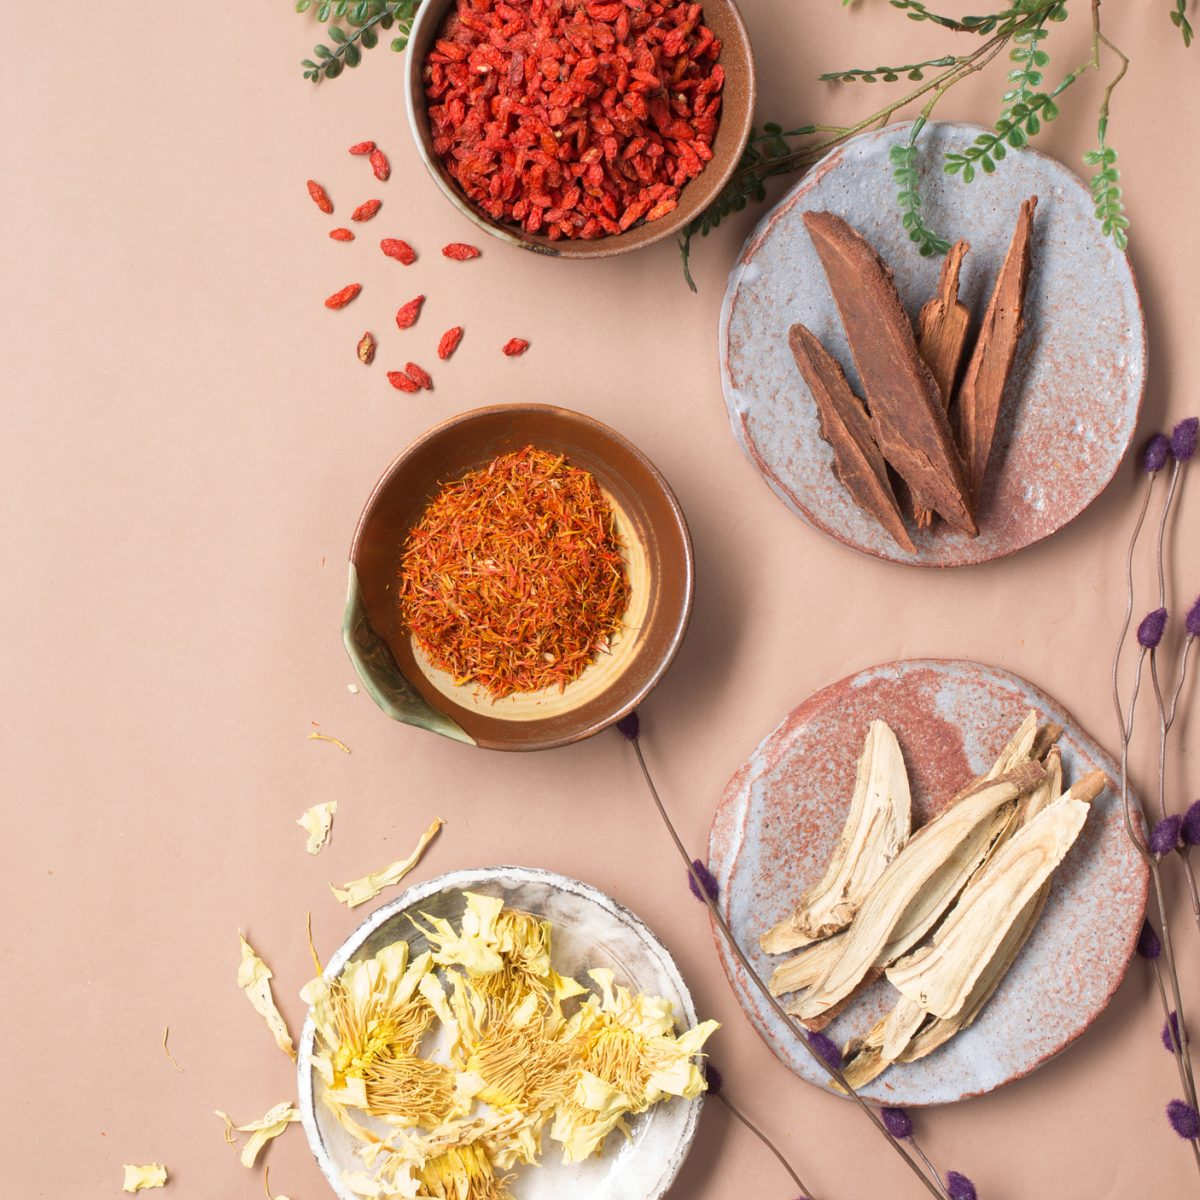 Chinese Herbs and Spices from Balik Pulau Penang | Clean Eats Malaysia